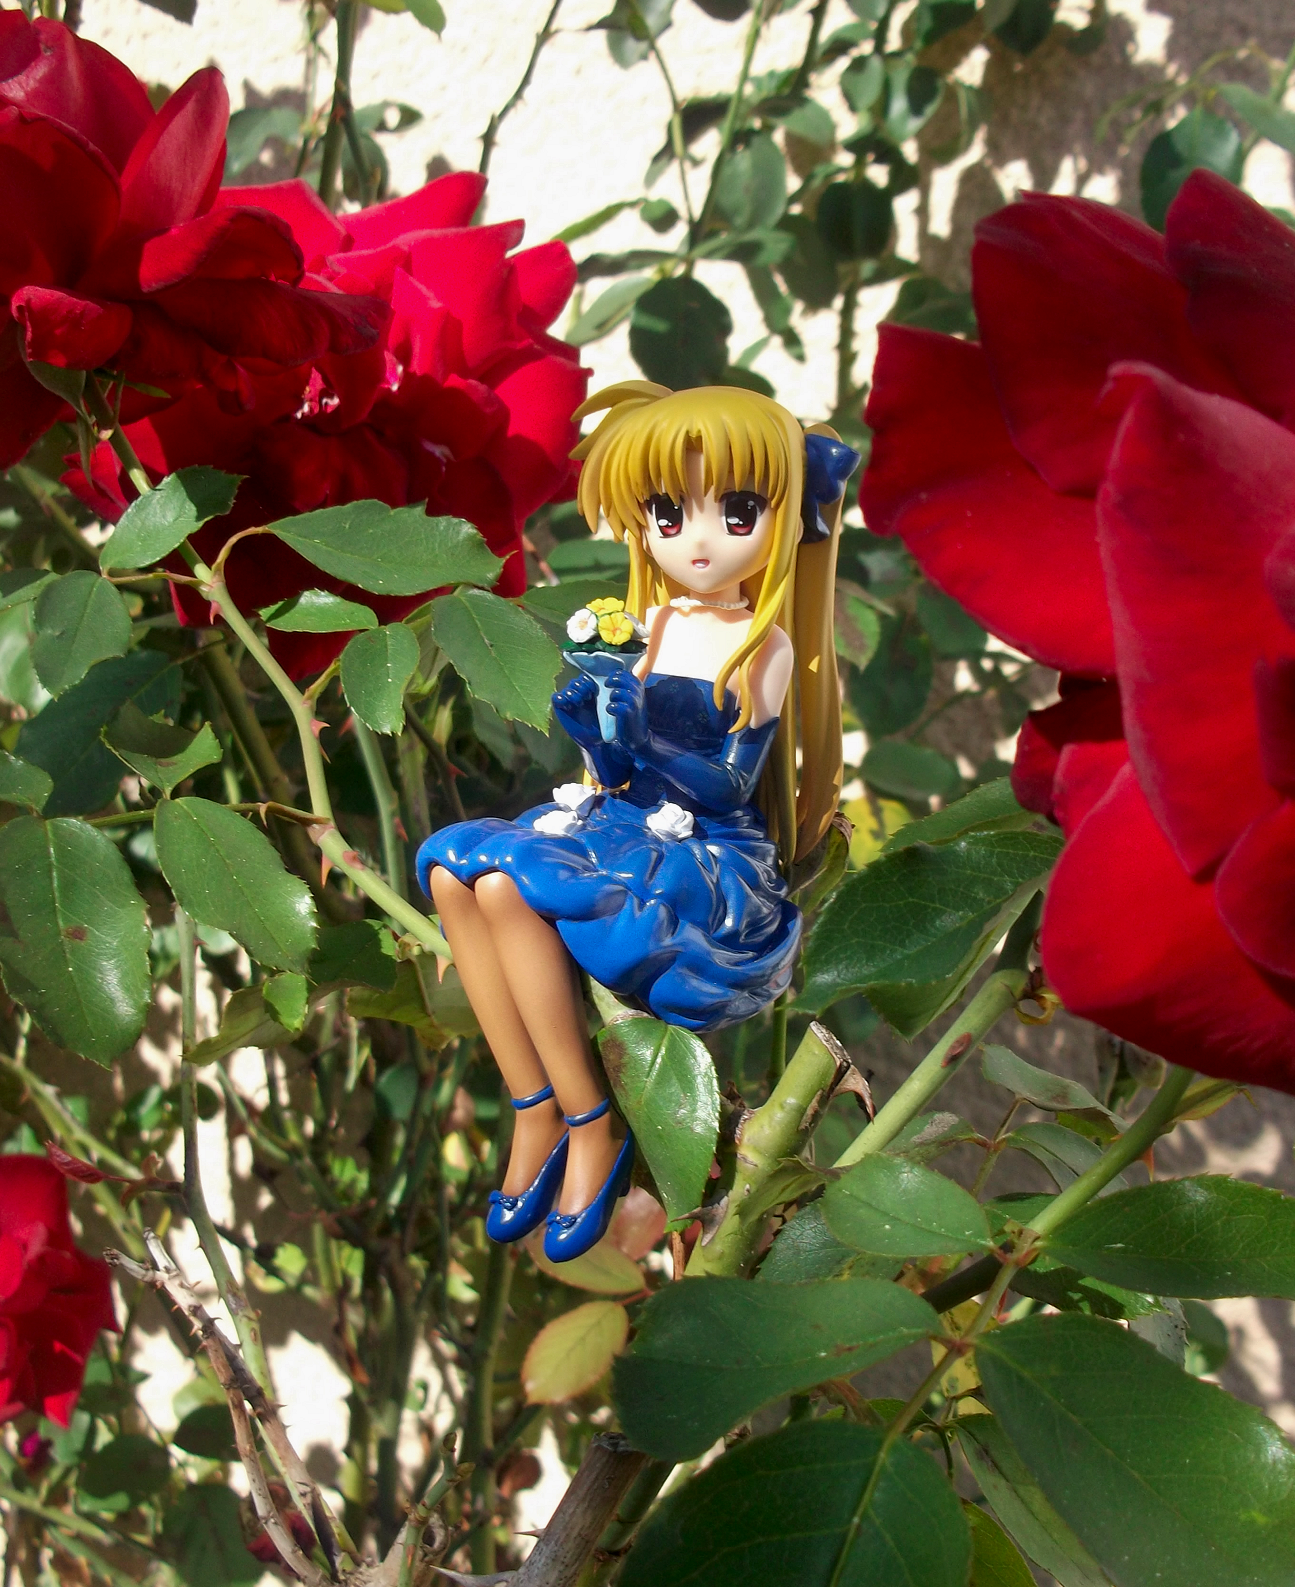 blond_hair ribbon red_eyes dress sitting necklace high_heels flowers rose kotobukiya elbow_gloves tights blue_dress bouquet blue_gloves sitting_pose roses gloves blue_ribbon fate_testarossa branch mahou_shoujo_lyrical_nanoha_the_movie_1st murakami_haruhi hair_ribbons hair_ribbon pearl_necklace blue_high_heels